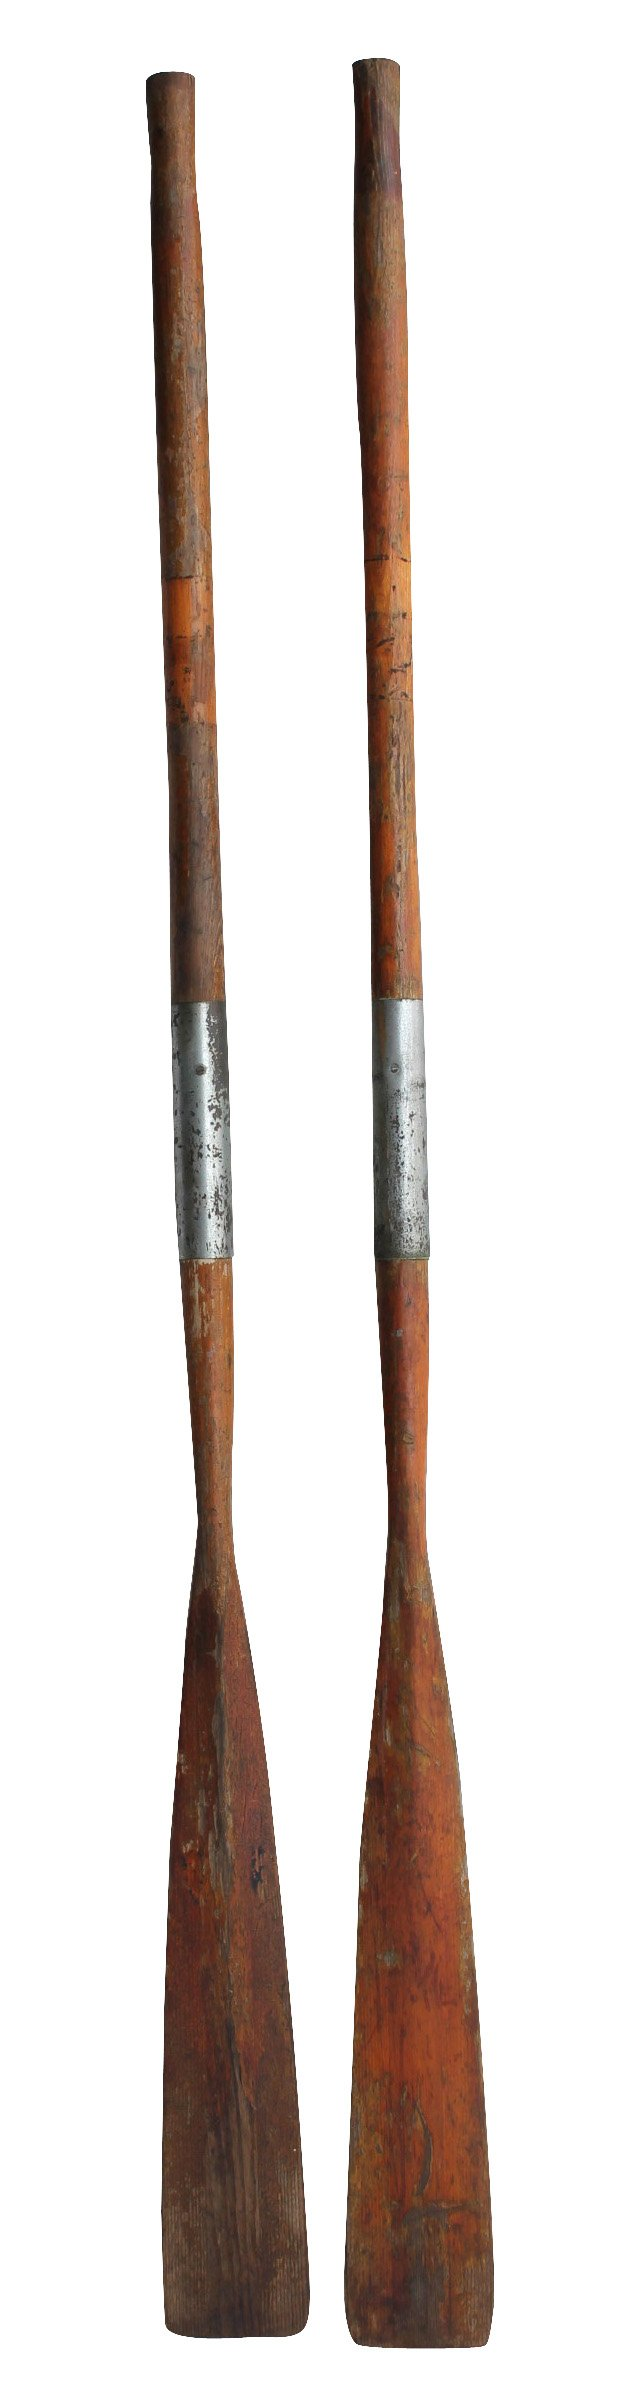 Antique Wooden Oars, Pair